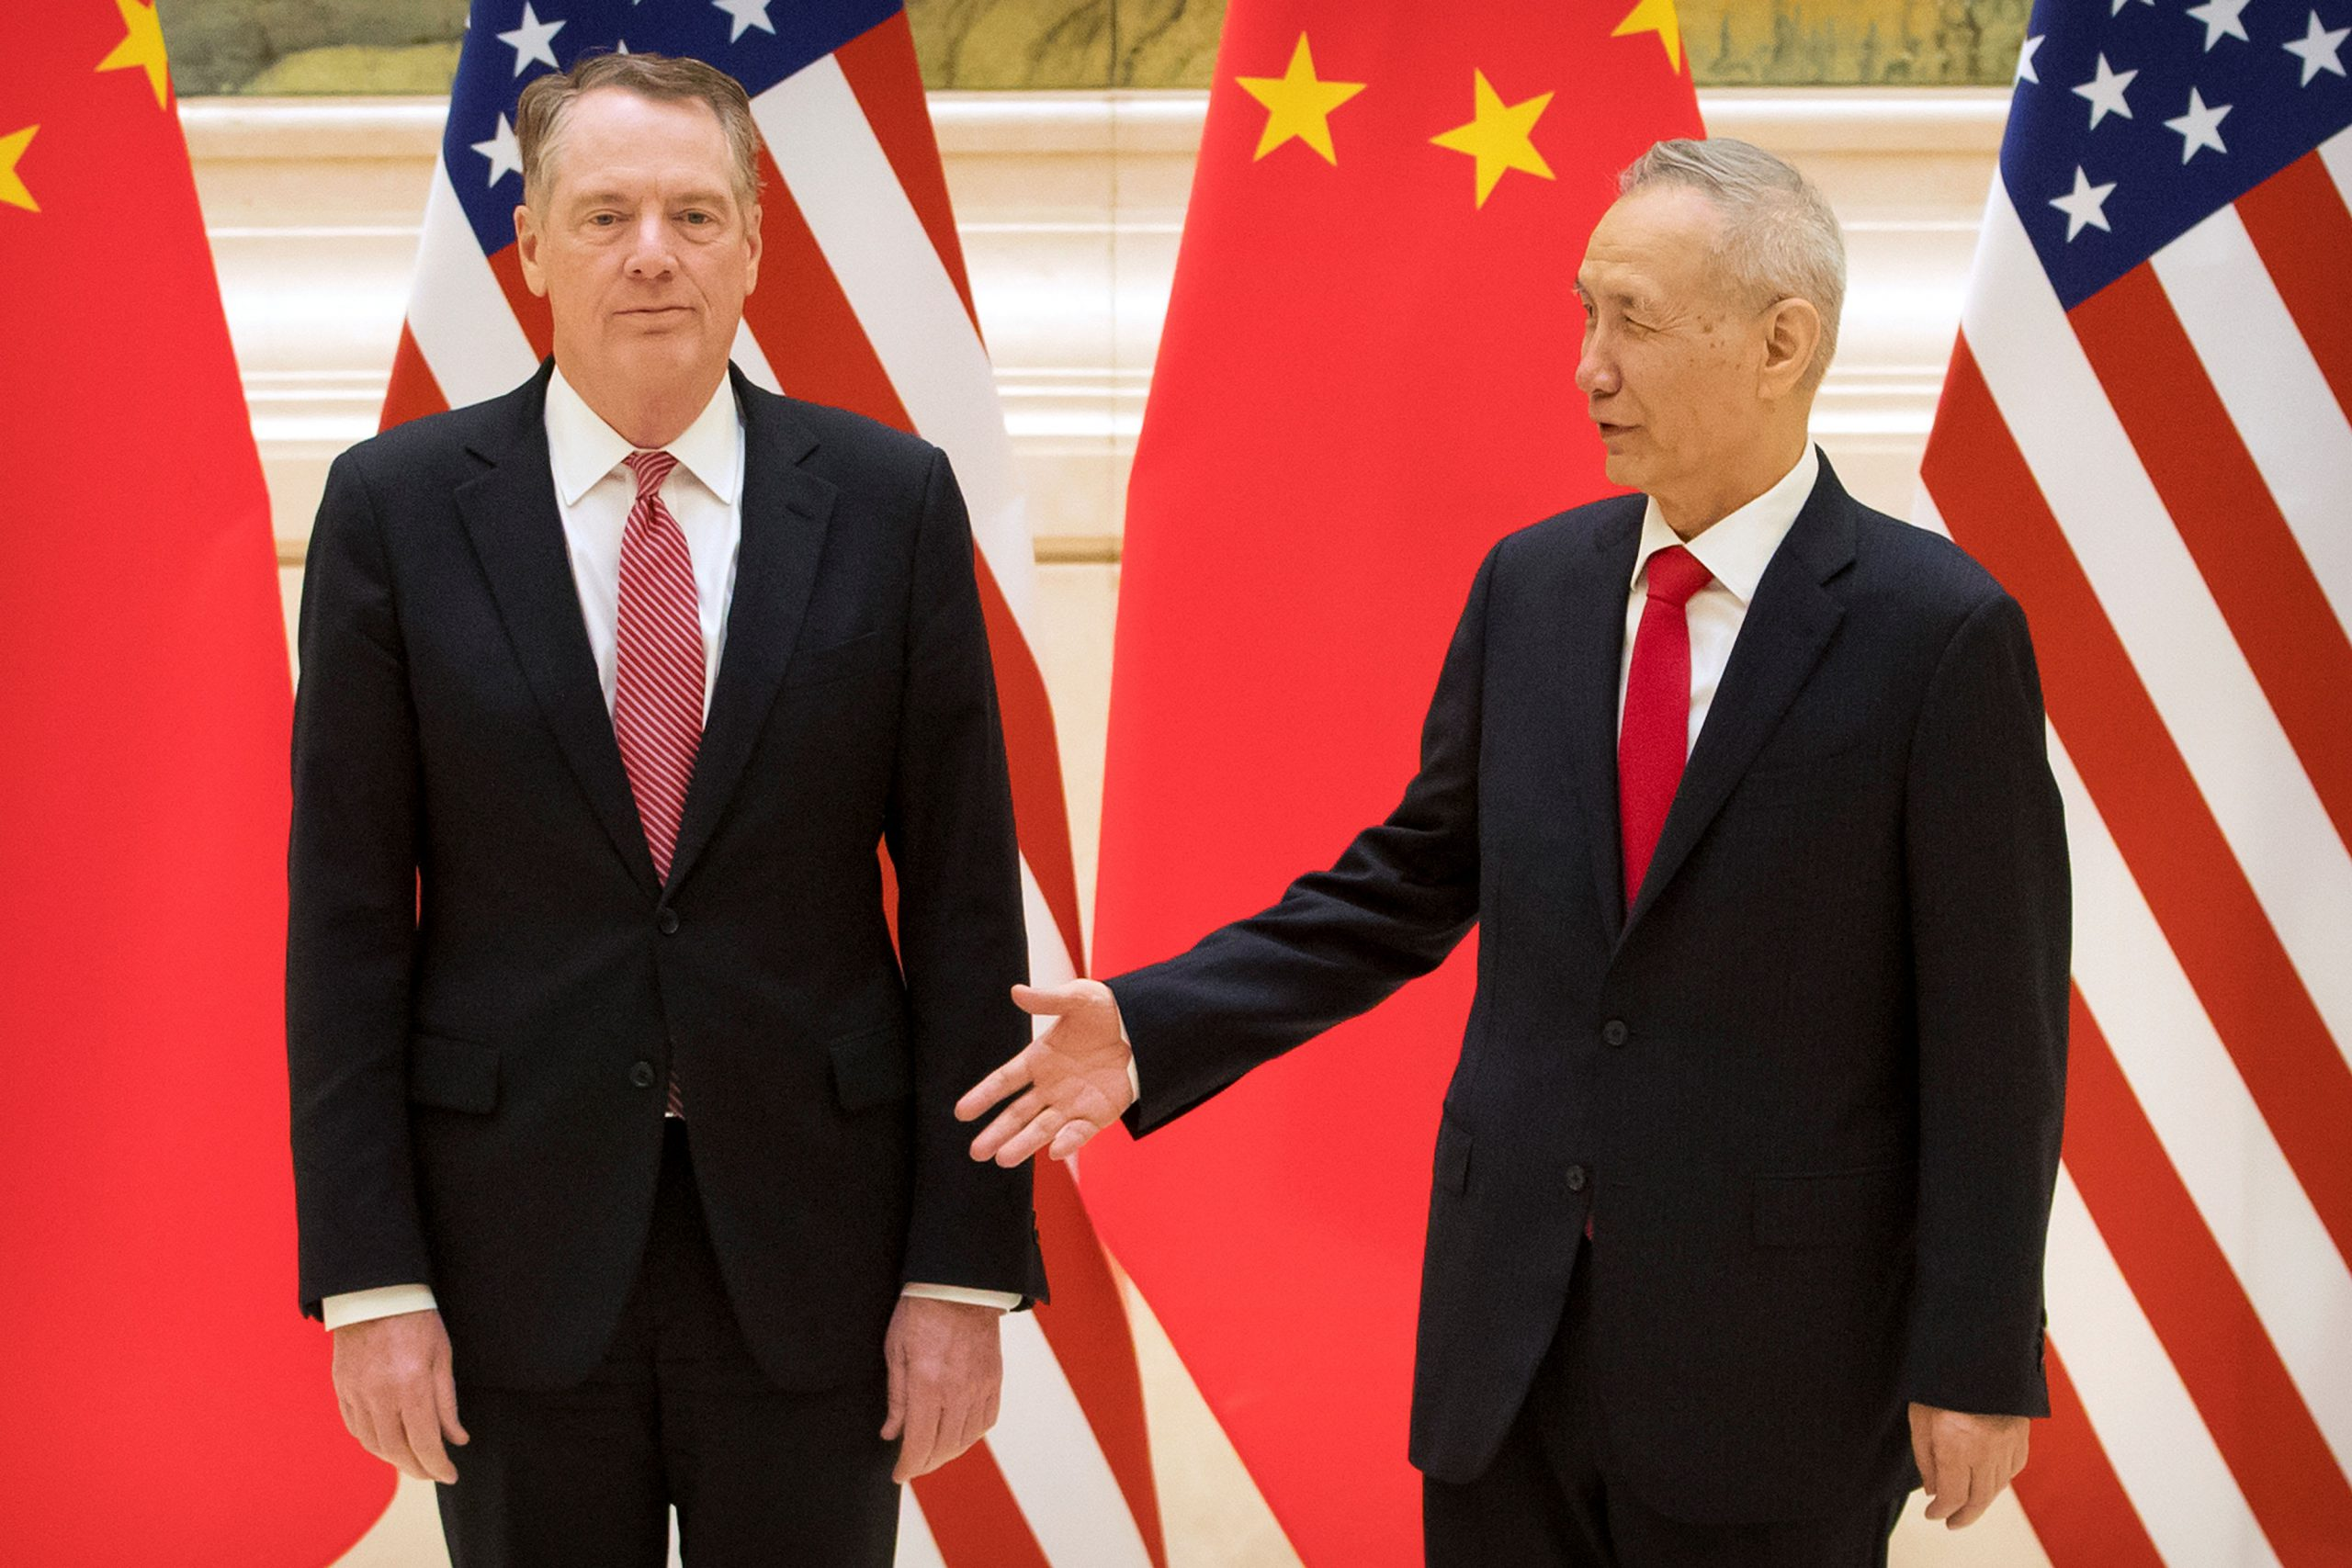 China and US reach phase one trade deal that includes some tariff relief and agriculture purchases